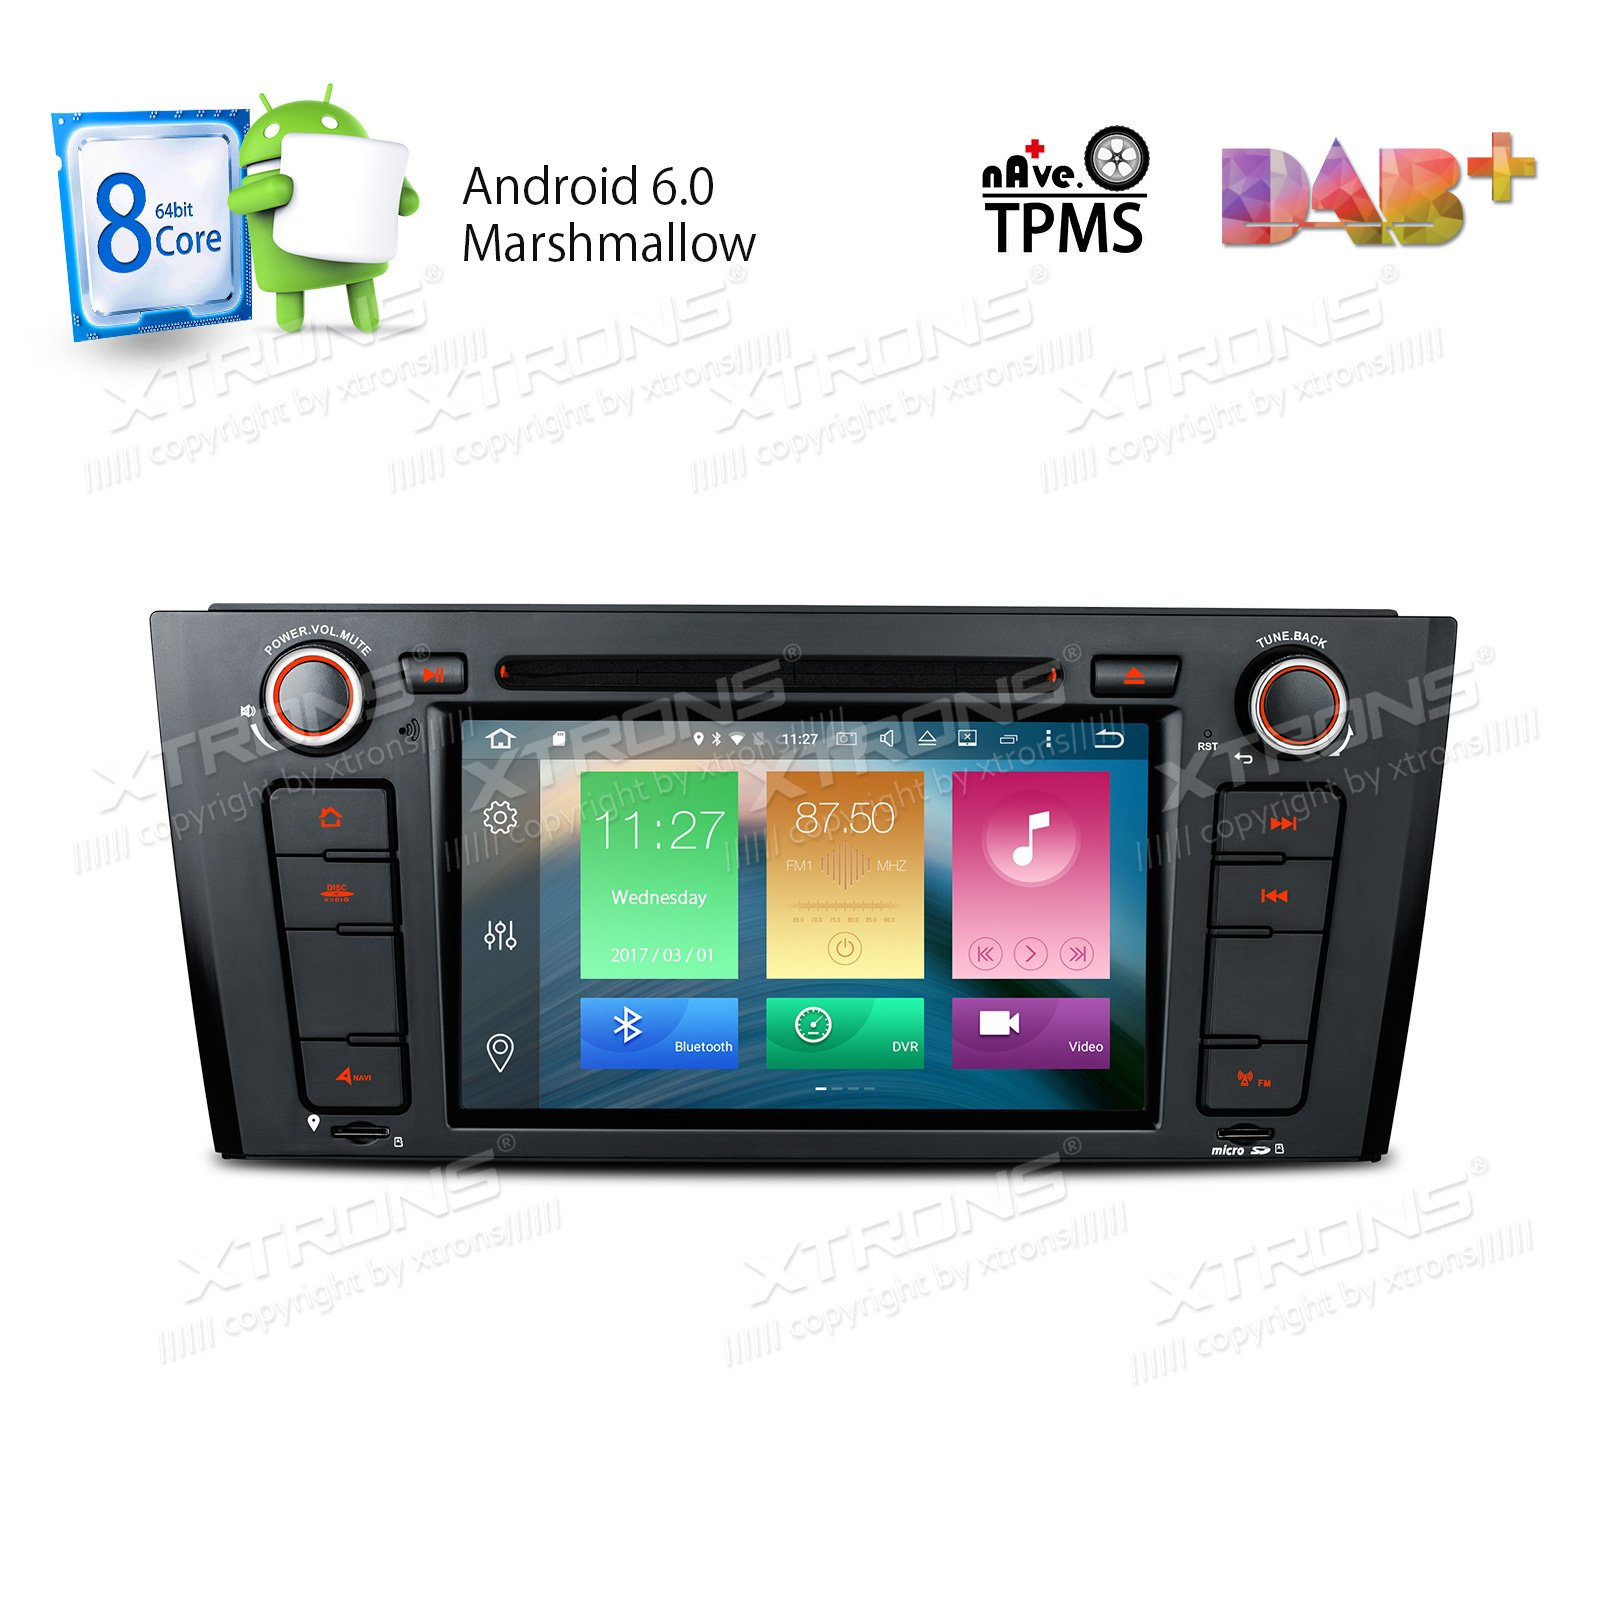 XTRONS Android 6.0 Octa-Core 64Bit 7 Inch Capacitive Touch Screen Car Stereo Radio DVD Player GPS CANbus Screen Mirroring Function OBD2 Tire Pressure Monitoring for BMW 1 Series E81 E82 E88 by XTRONS (Image #1)